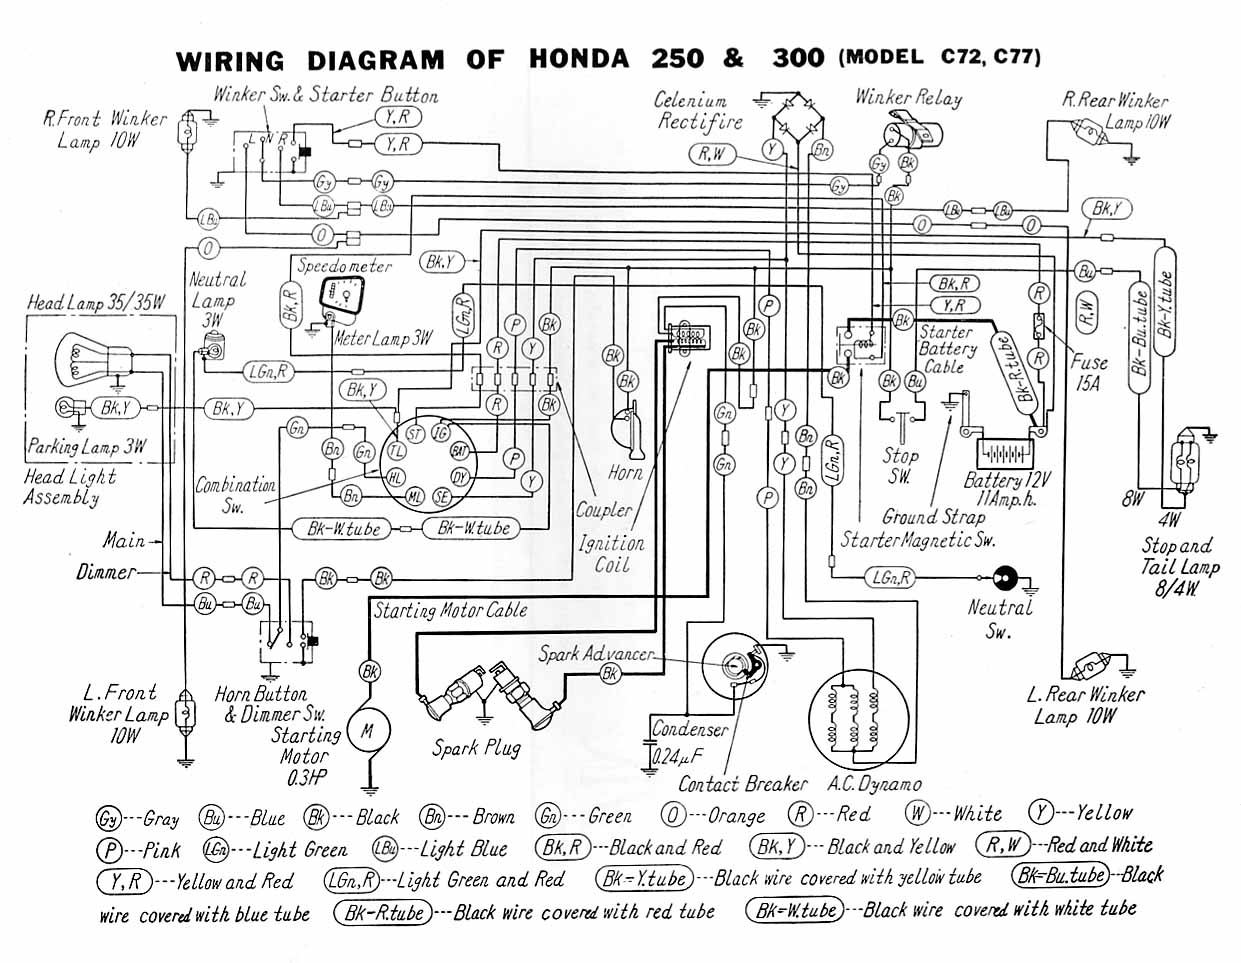 Amusing 1983 Honda Shadow 750 Wiring Diagram Contemporary Best